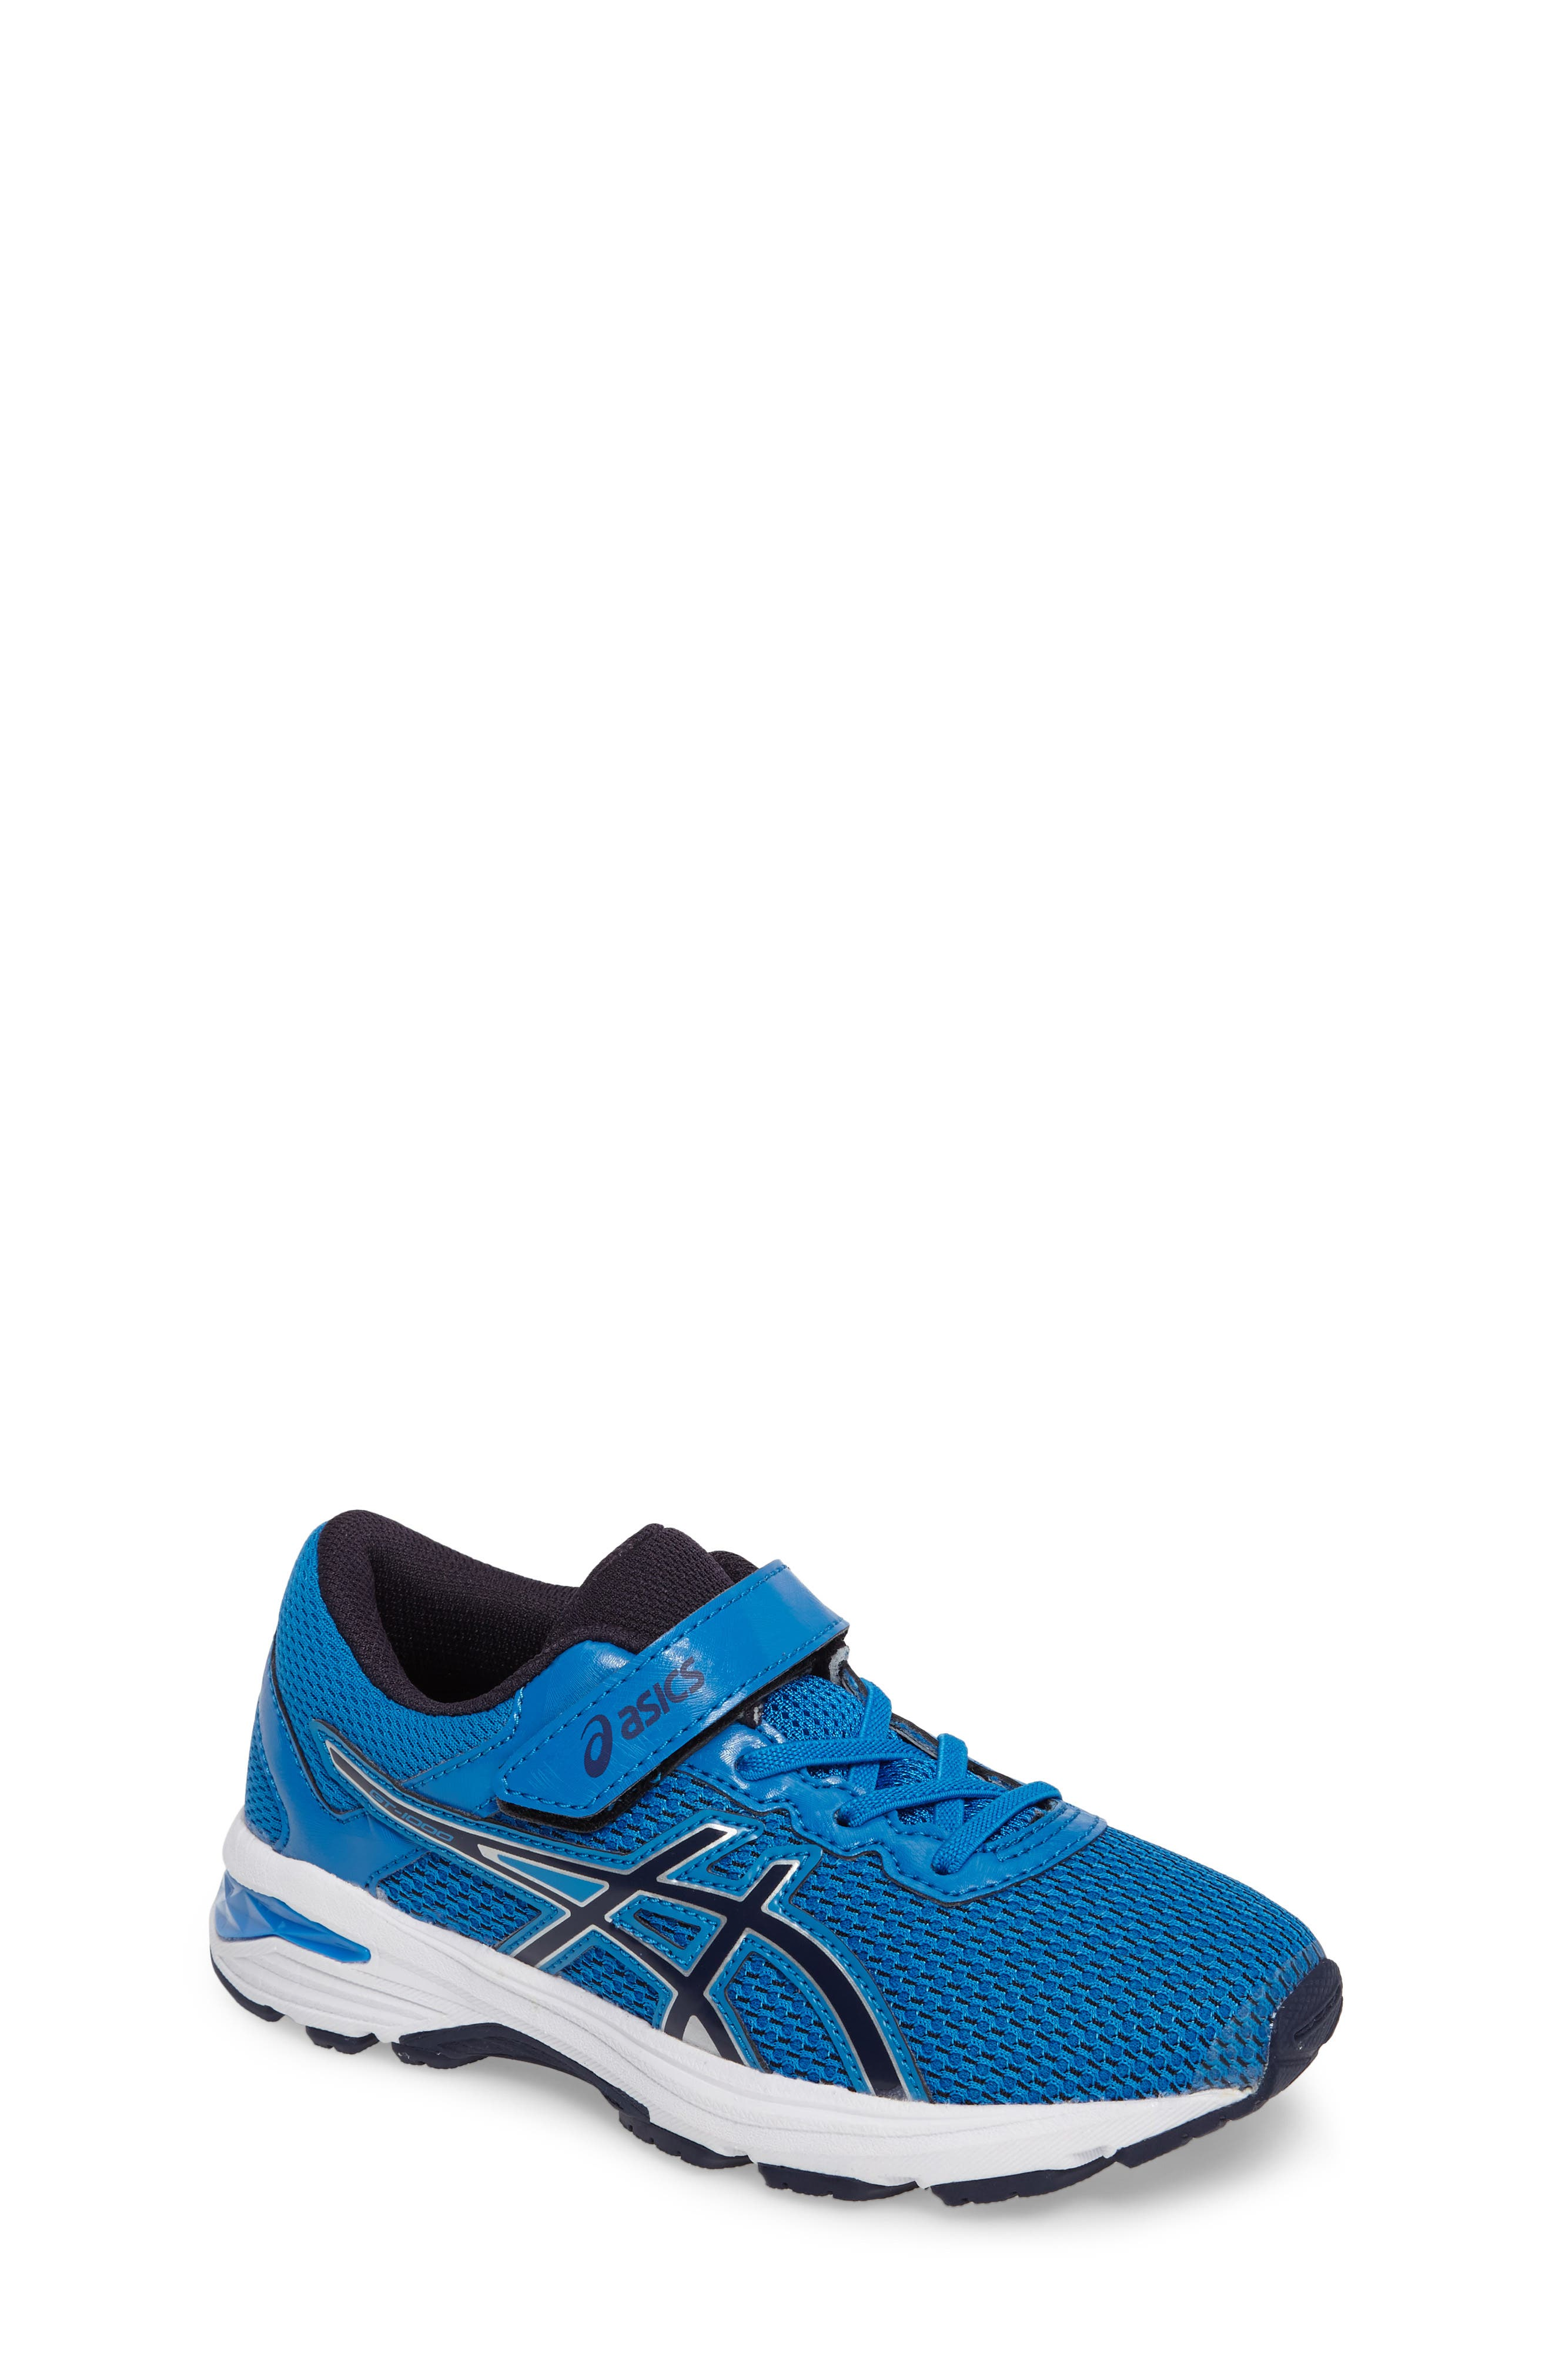 Asics GT-1000<sup>™</sup> 6 PS Sneaker,                         Main,                         color, Blue/ Peacock